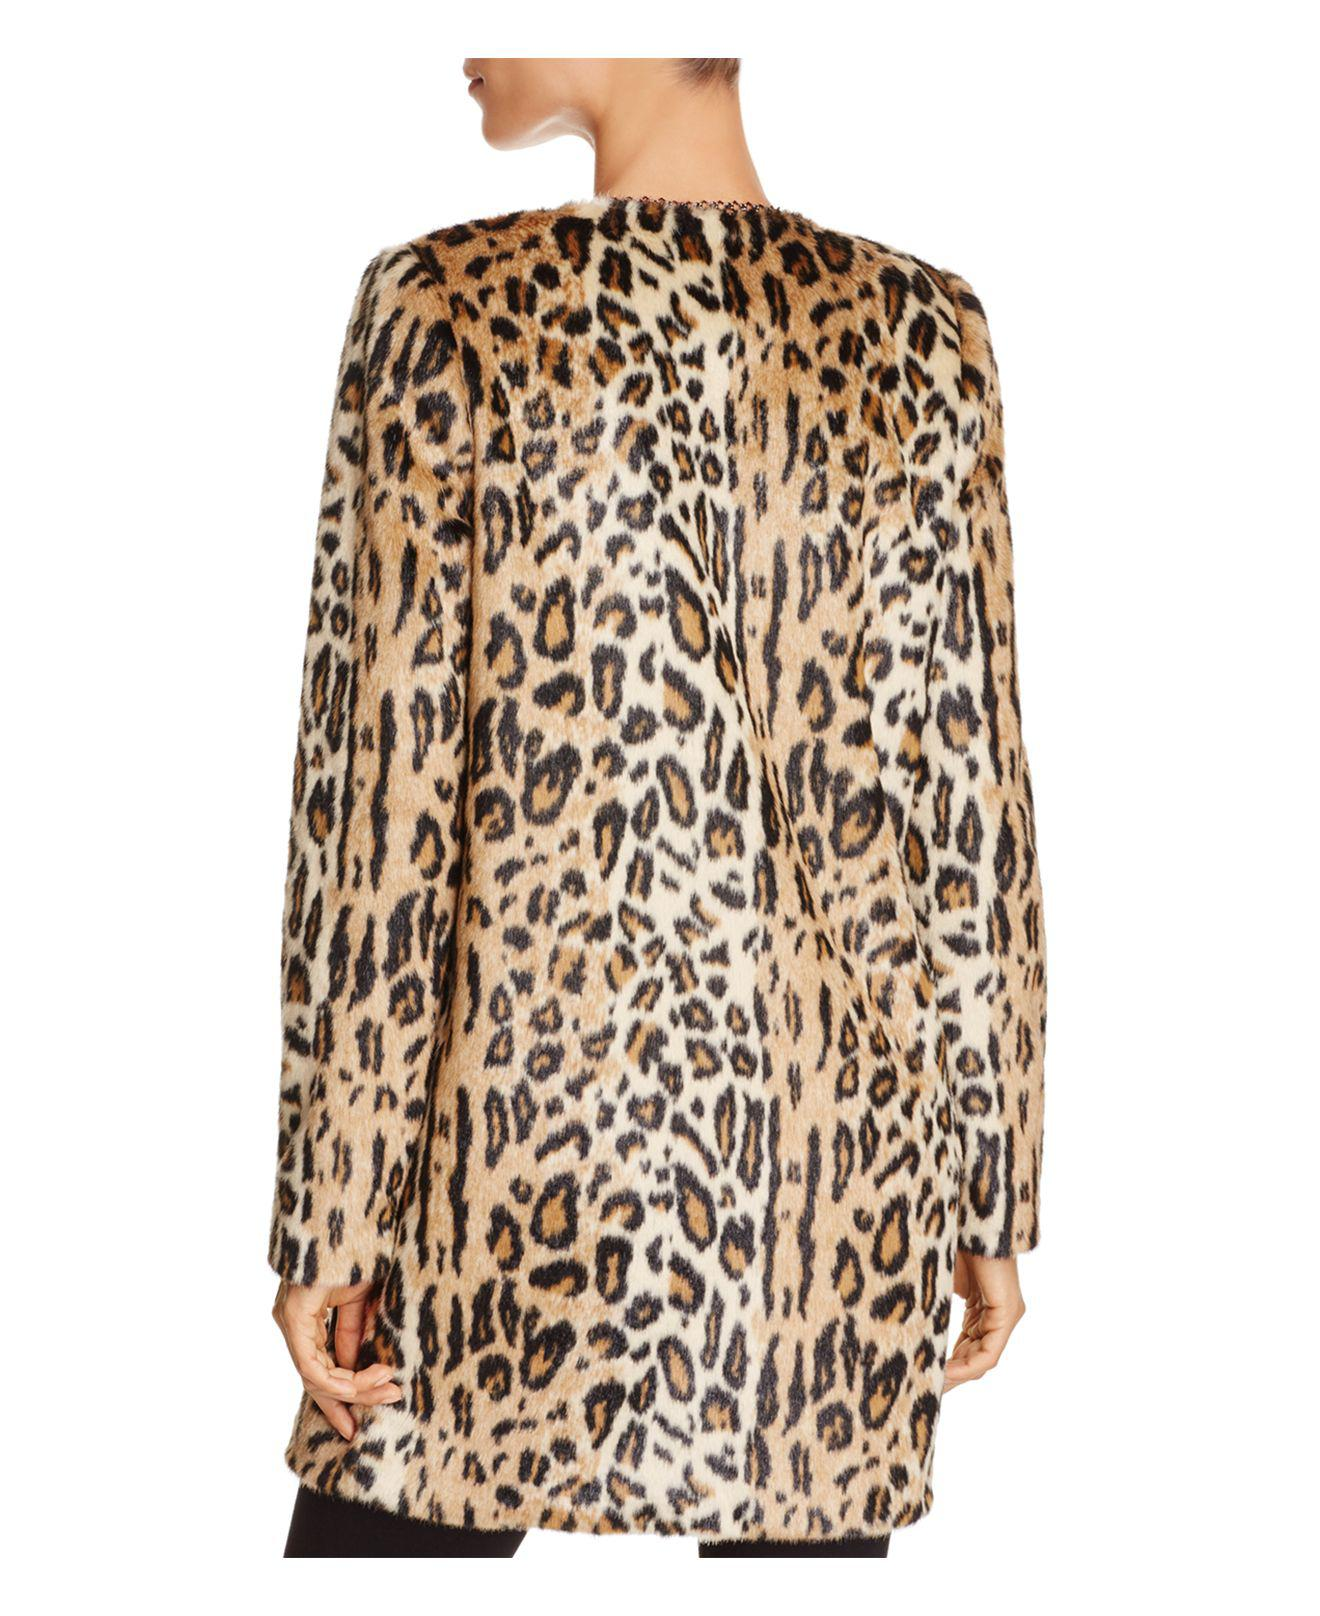 3565b6eeeb82 T Tahari Jenna Faux Leopard Coat in Natural - Lyst